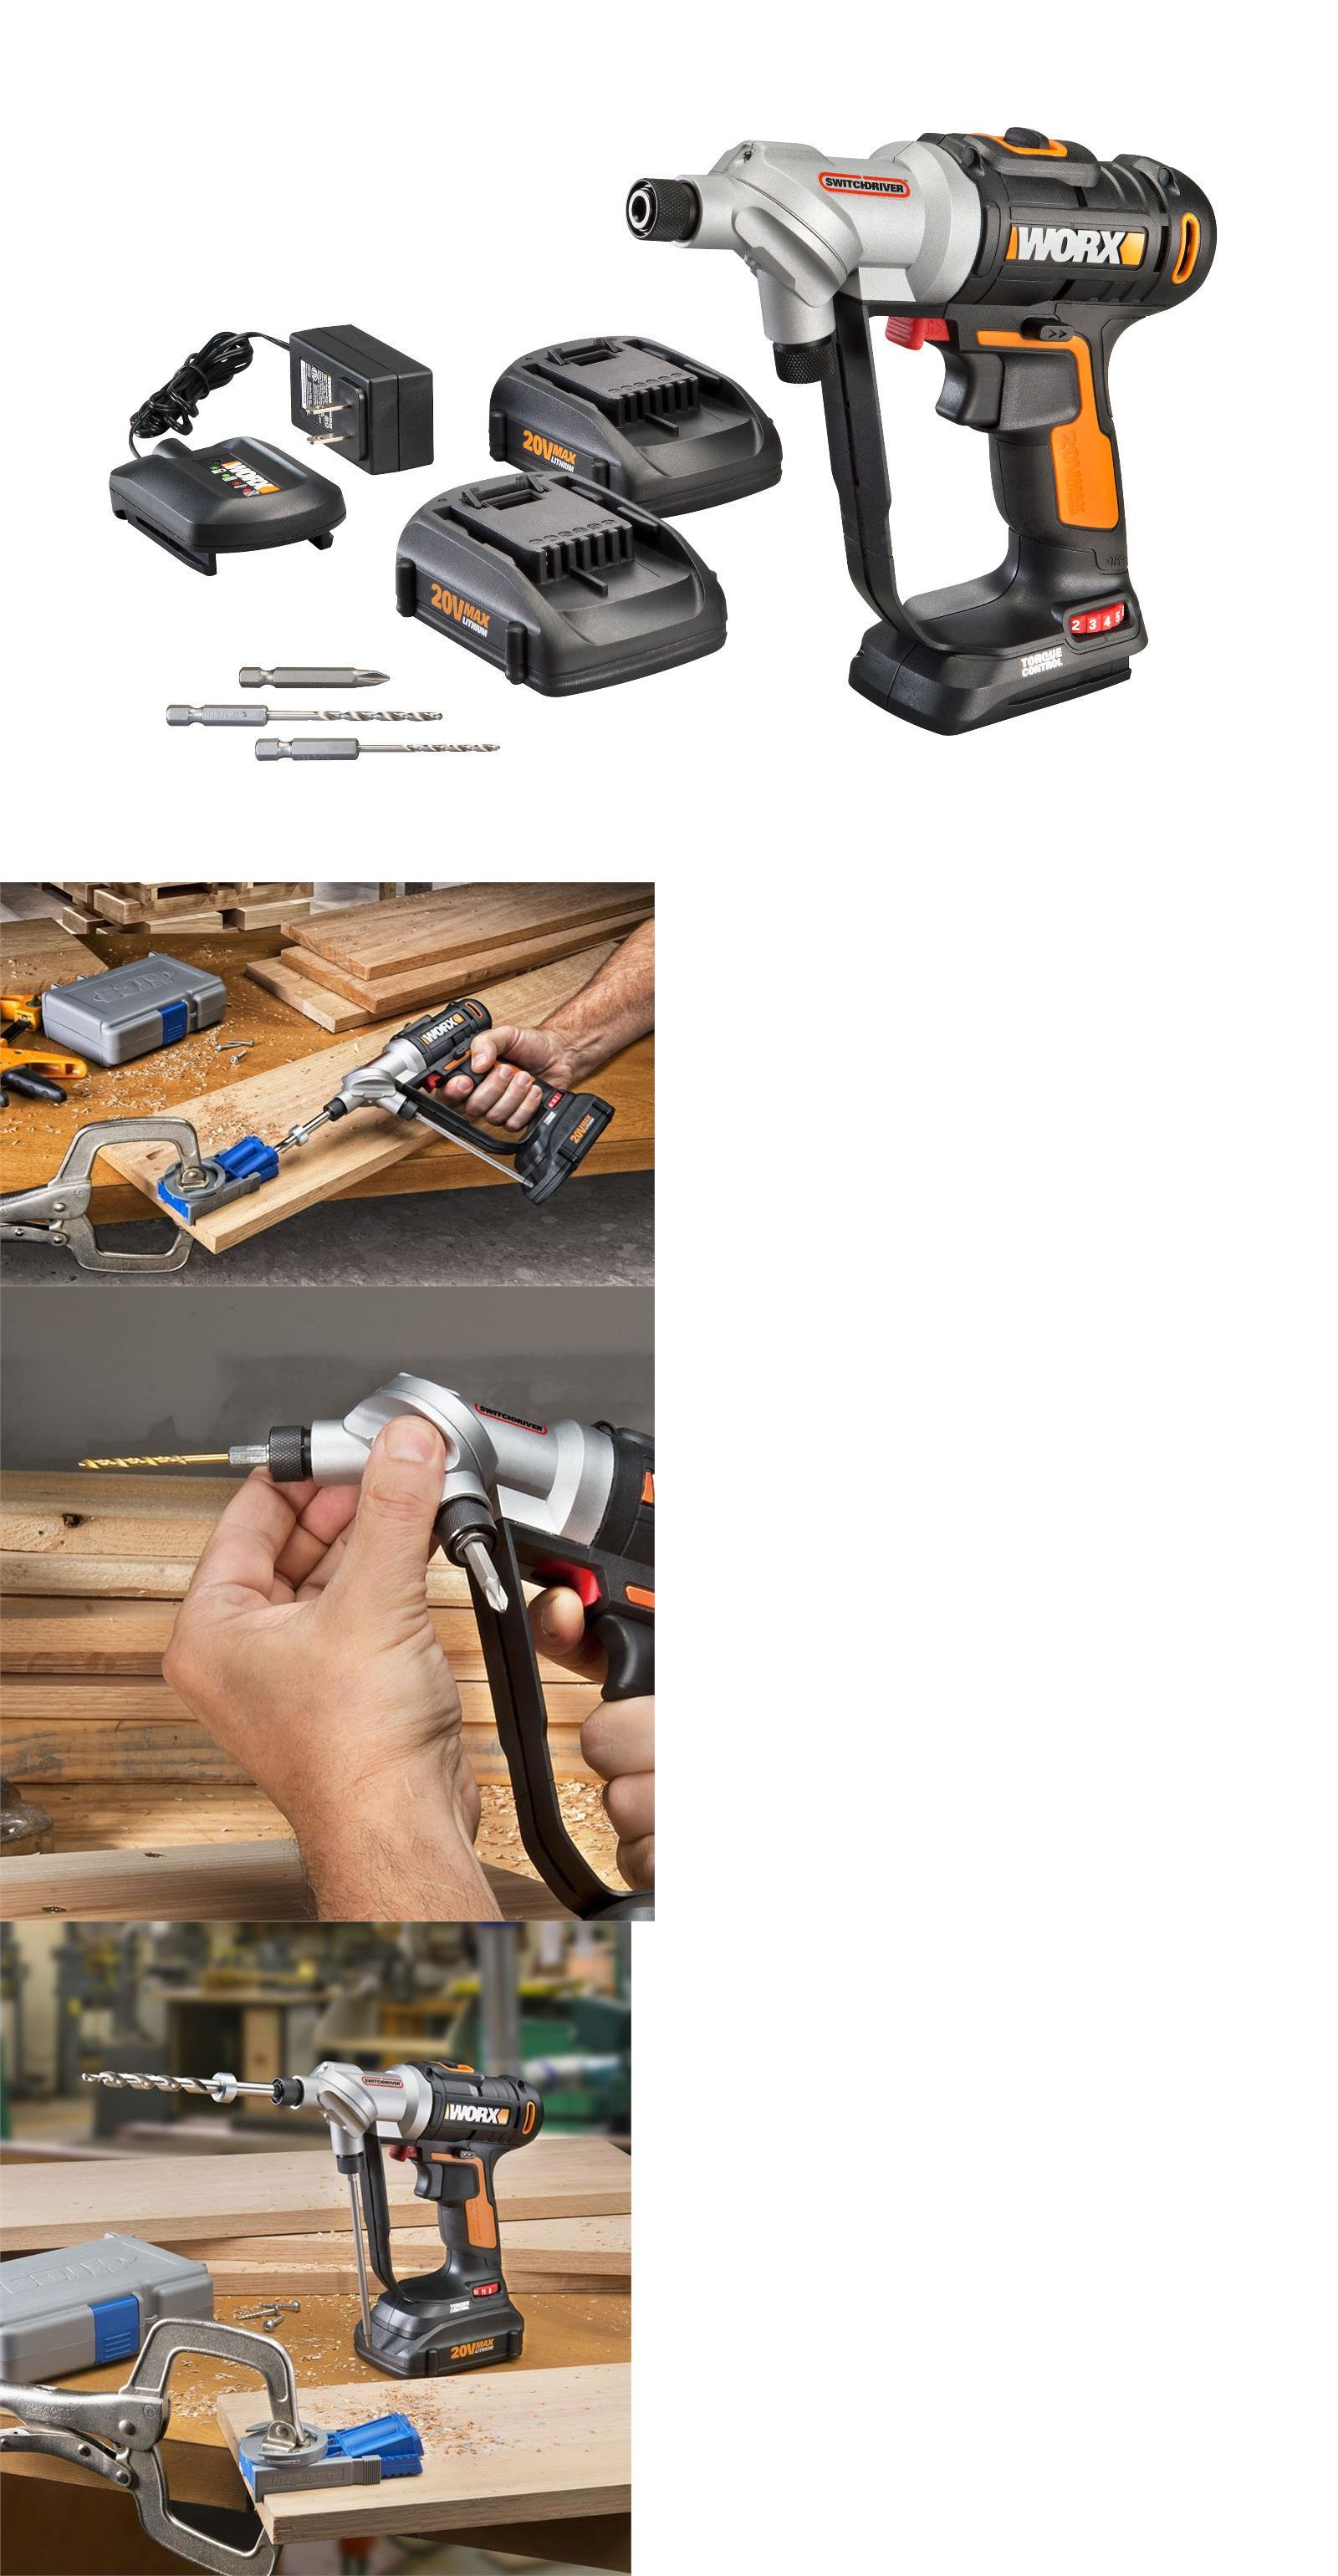 Screwdrivers 122839 Wx176l 5 Worx 20v Switchdriver Cordless Drill And Driver 2 Batteries Included Buy It Now Only Cordless Drill Drill Driver Cordless